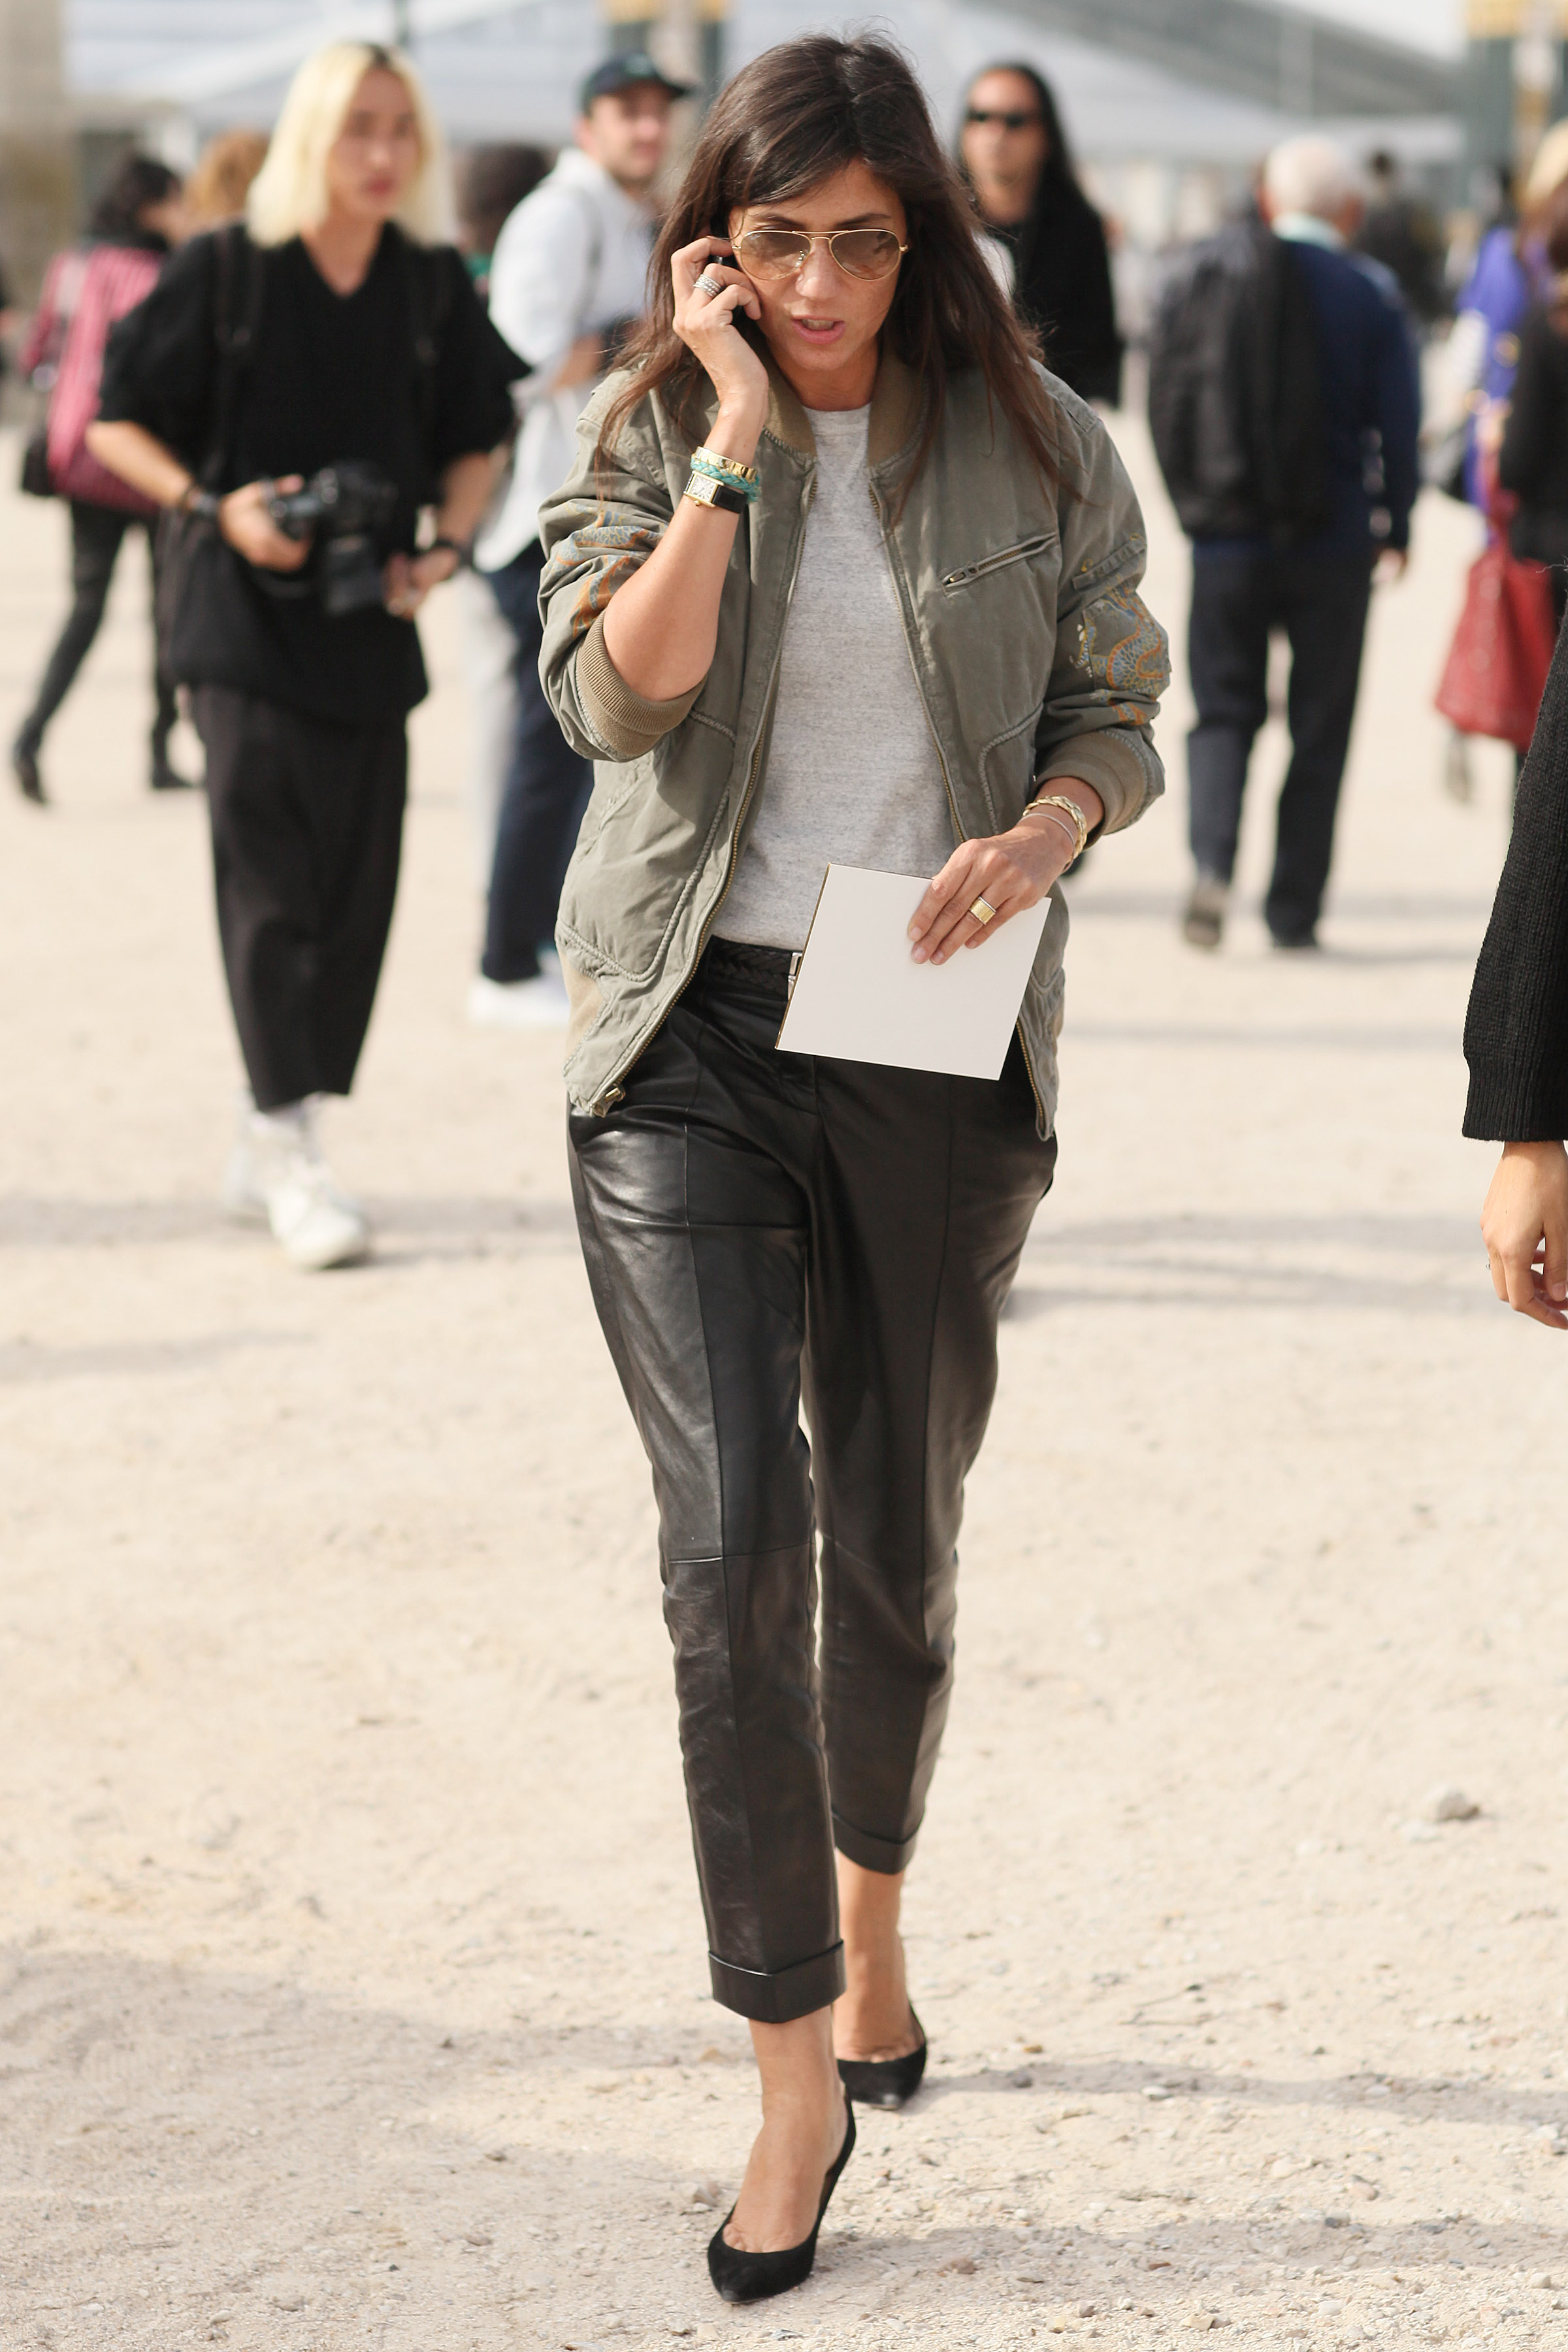 Emmanuelle-Alt-mixed-leather-trousers-faded-bomber.jpg